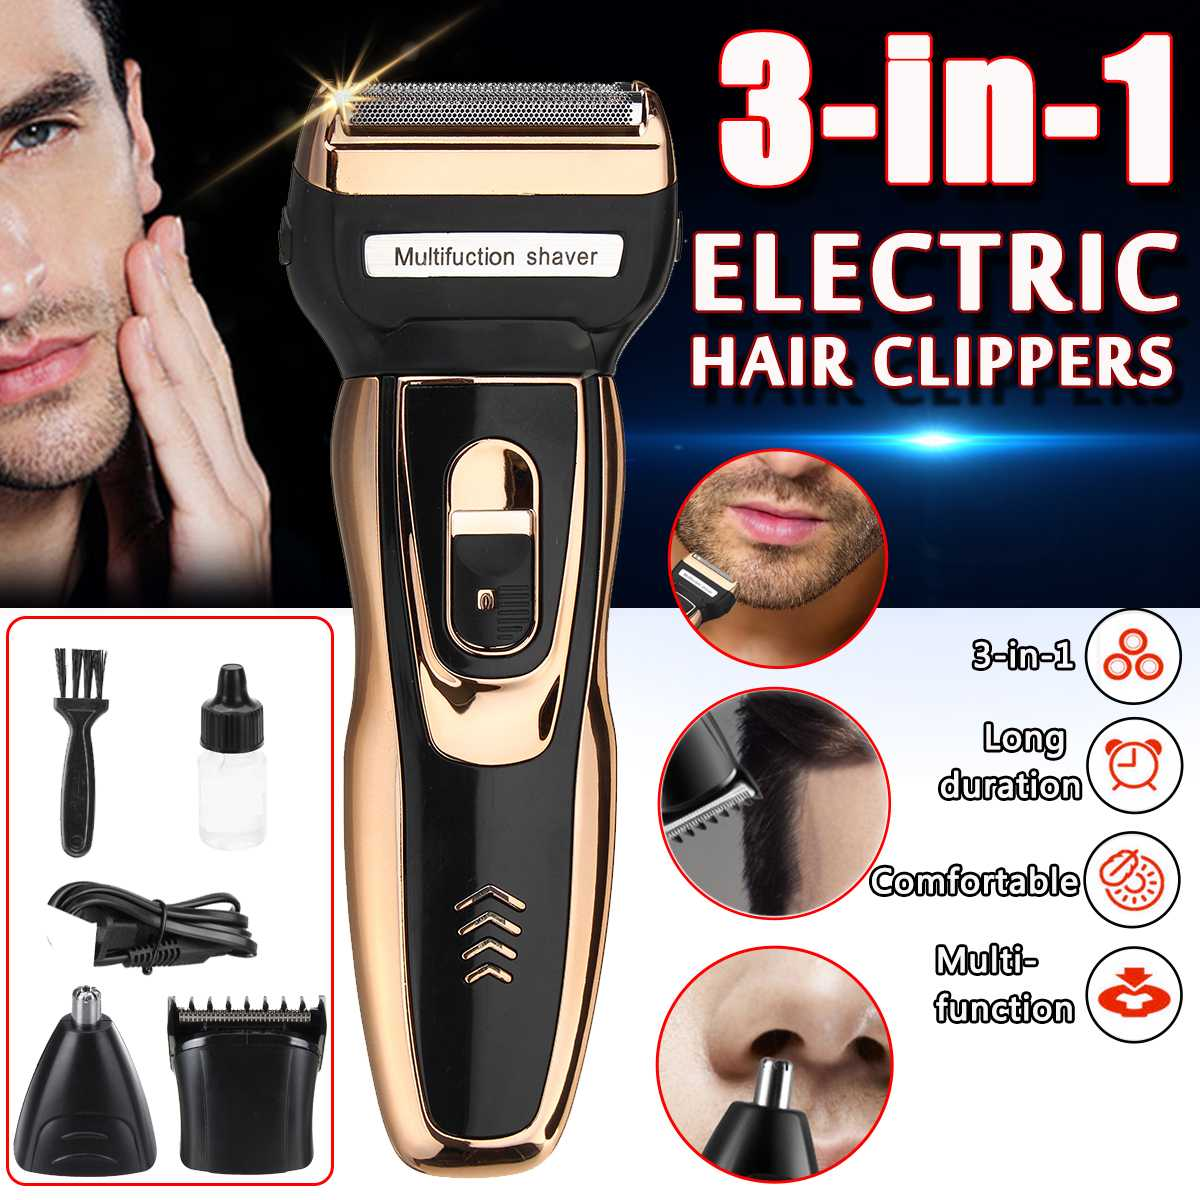 3 In 1 Electric Shaver Rechargeable Men Electric Shaver Grooming Beard Trimmer Reciprocating Hair Clippers Nose Trimmer Portable